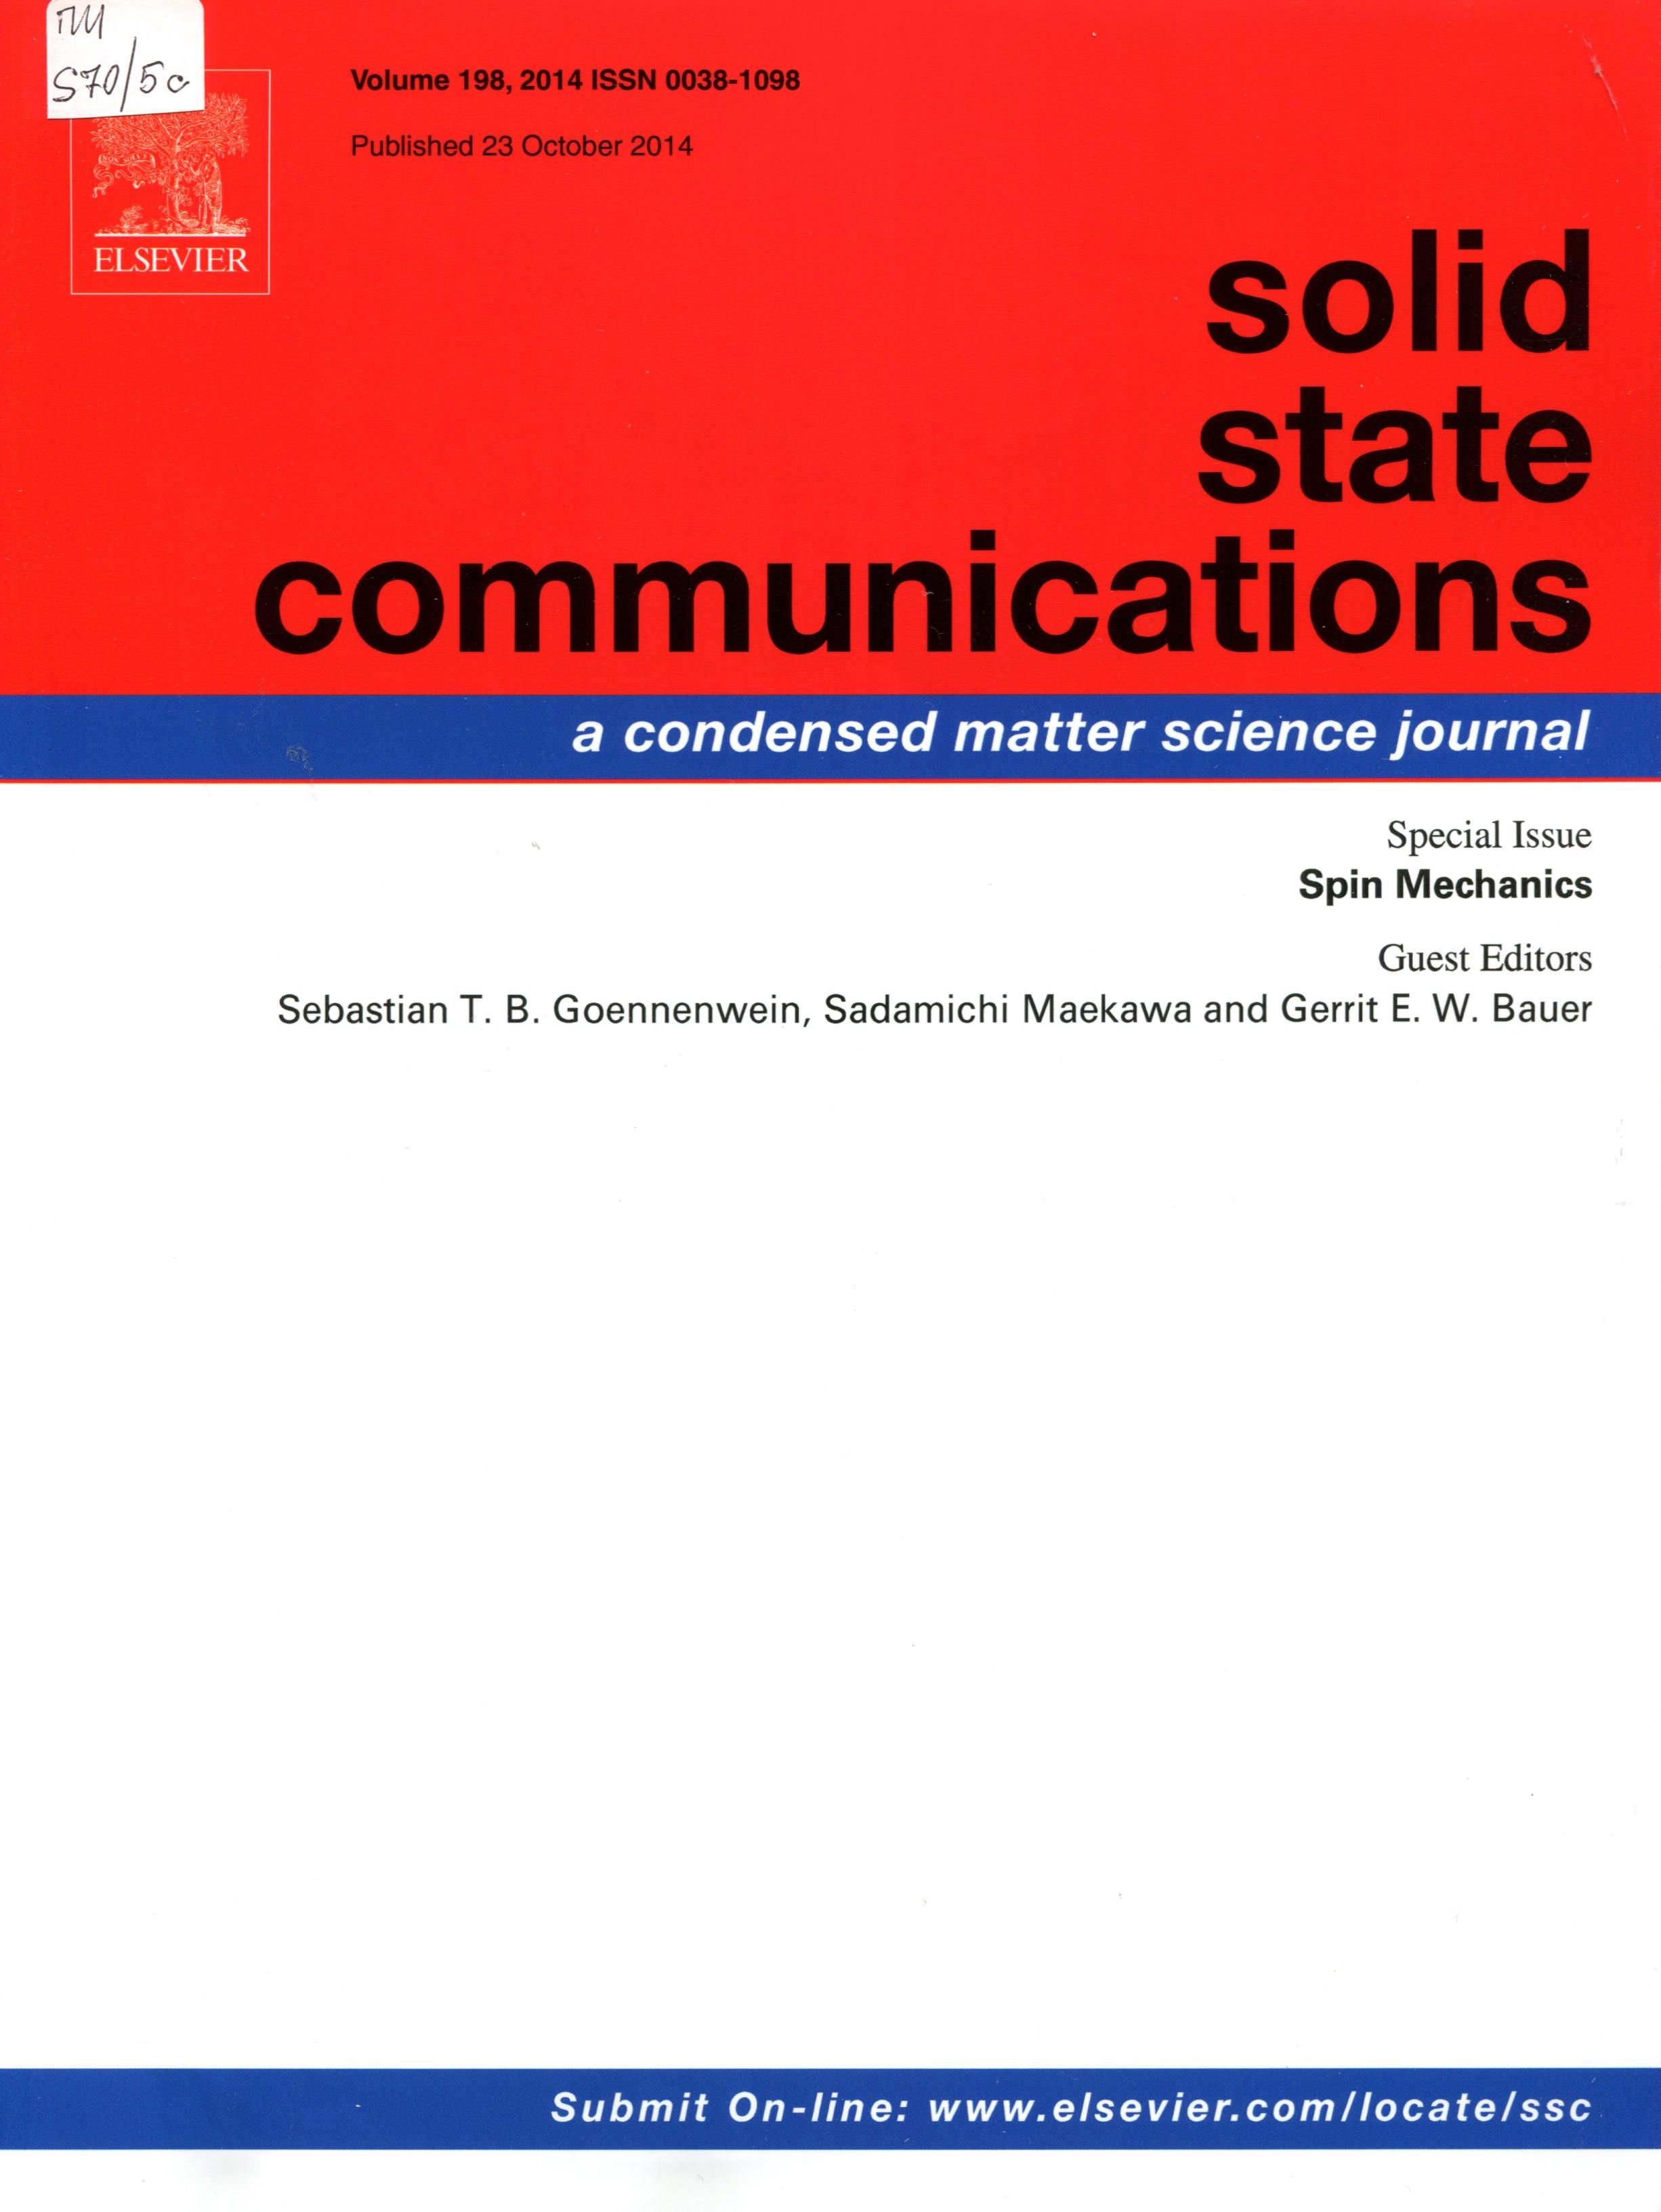 Публикации в журналах, наукометрической базы Scopus   Solid State Communications #Solid #State #Communications #Journals #публикация, #журнал, #публикациявжурнале #globalpublication #publication #статья